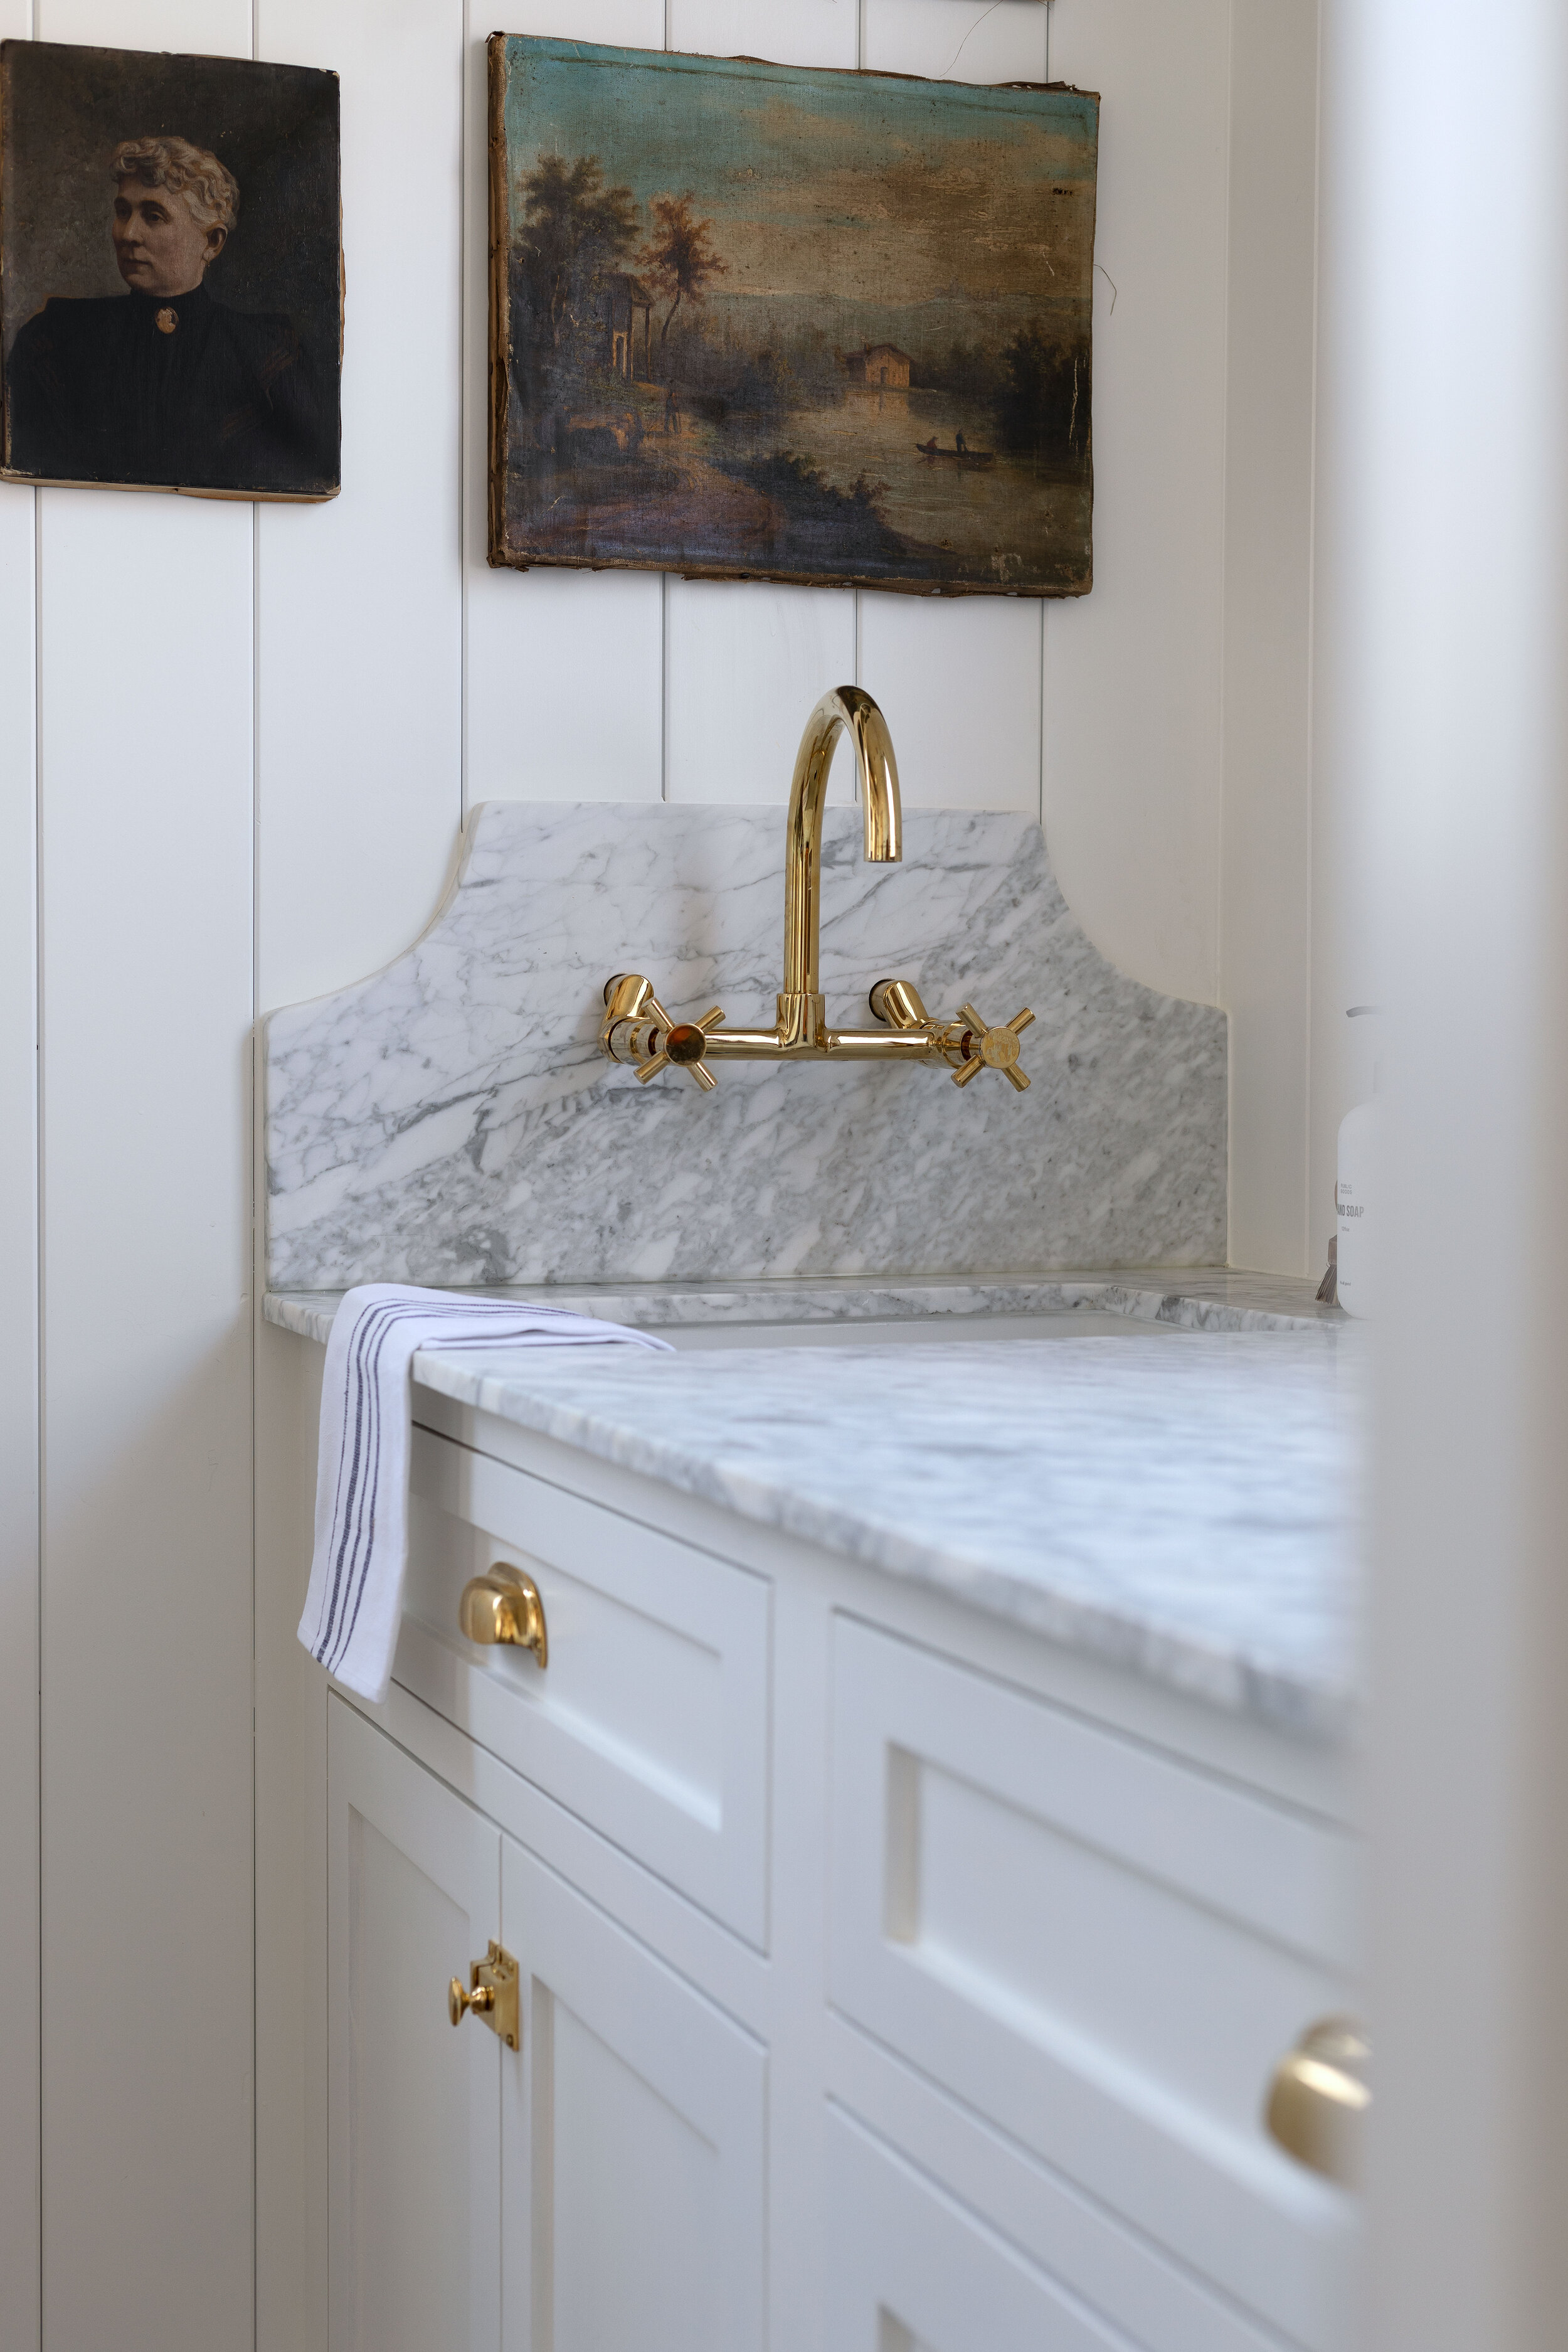 Diy How To Remove Stains From Marble Surfaces Using A Homemade Poultice The Grit And Polish